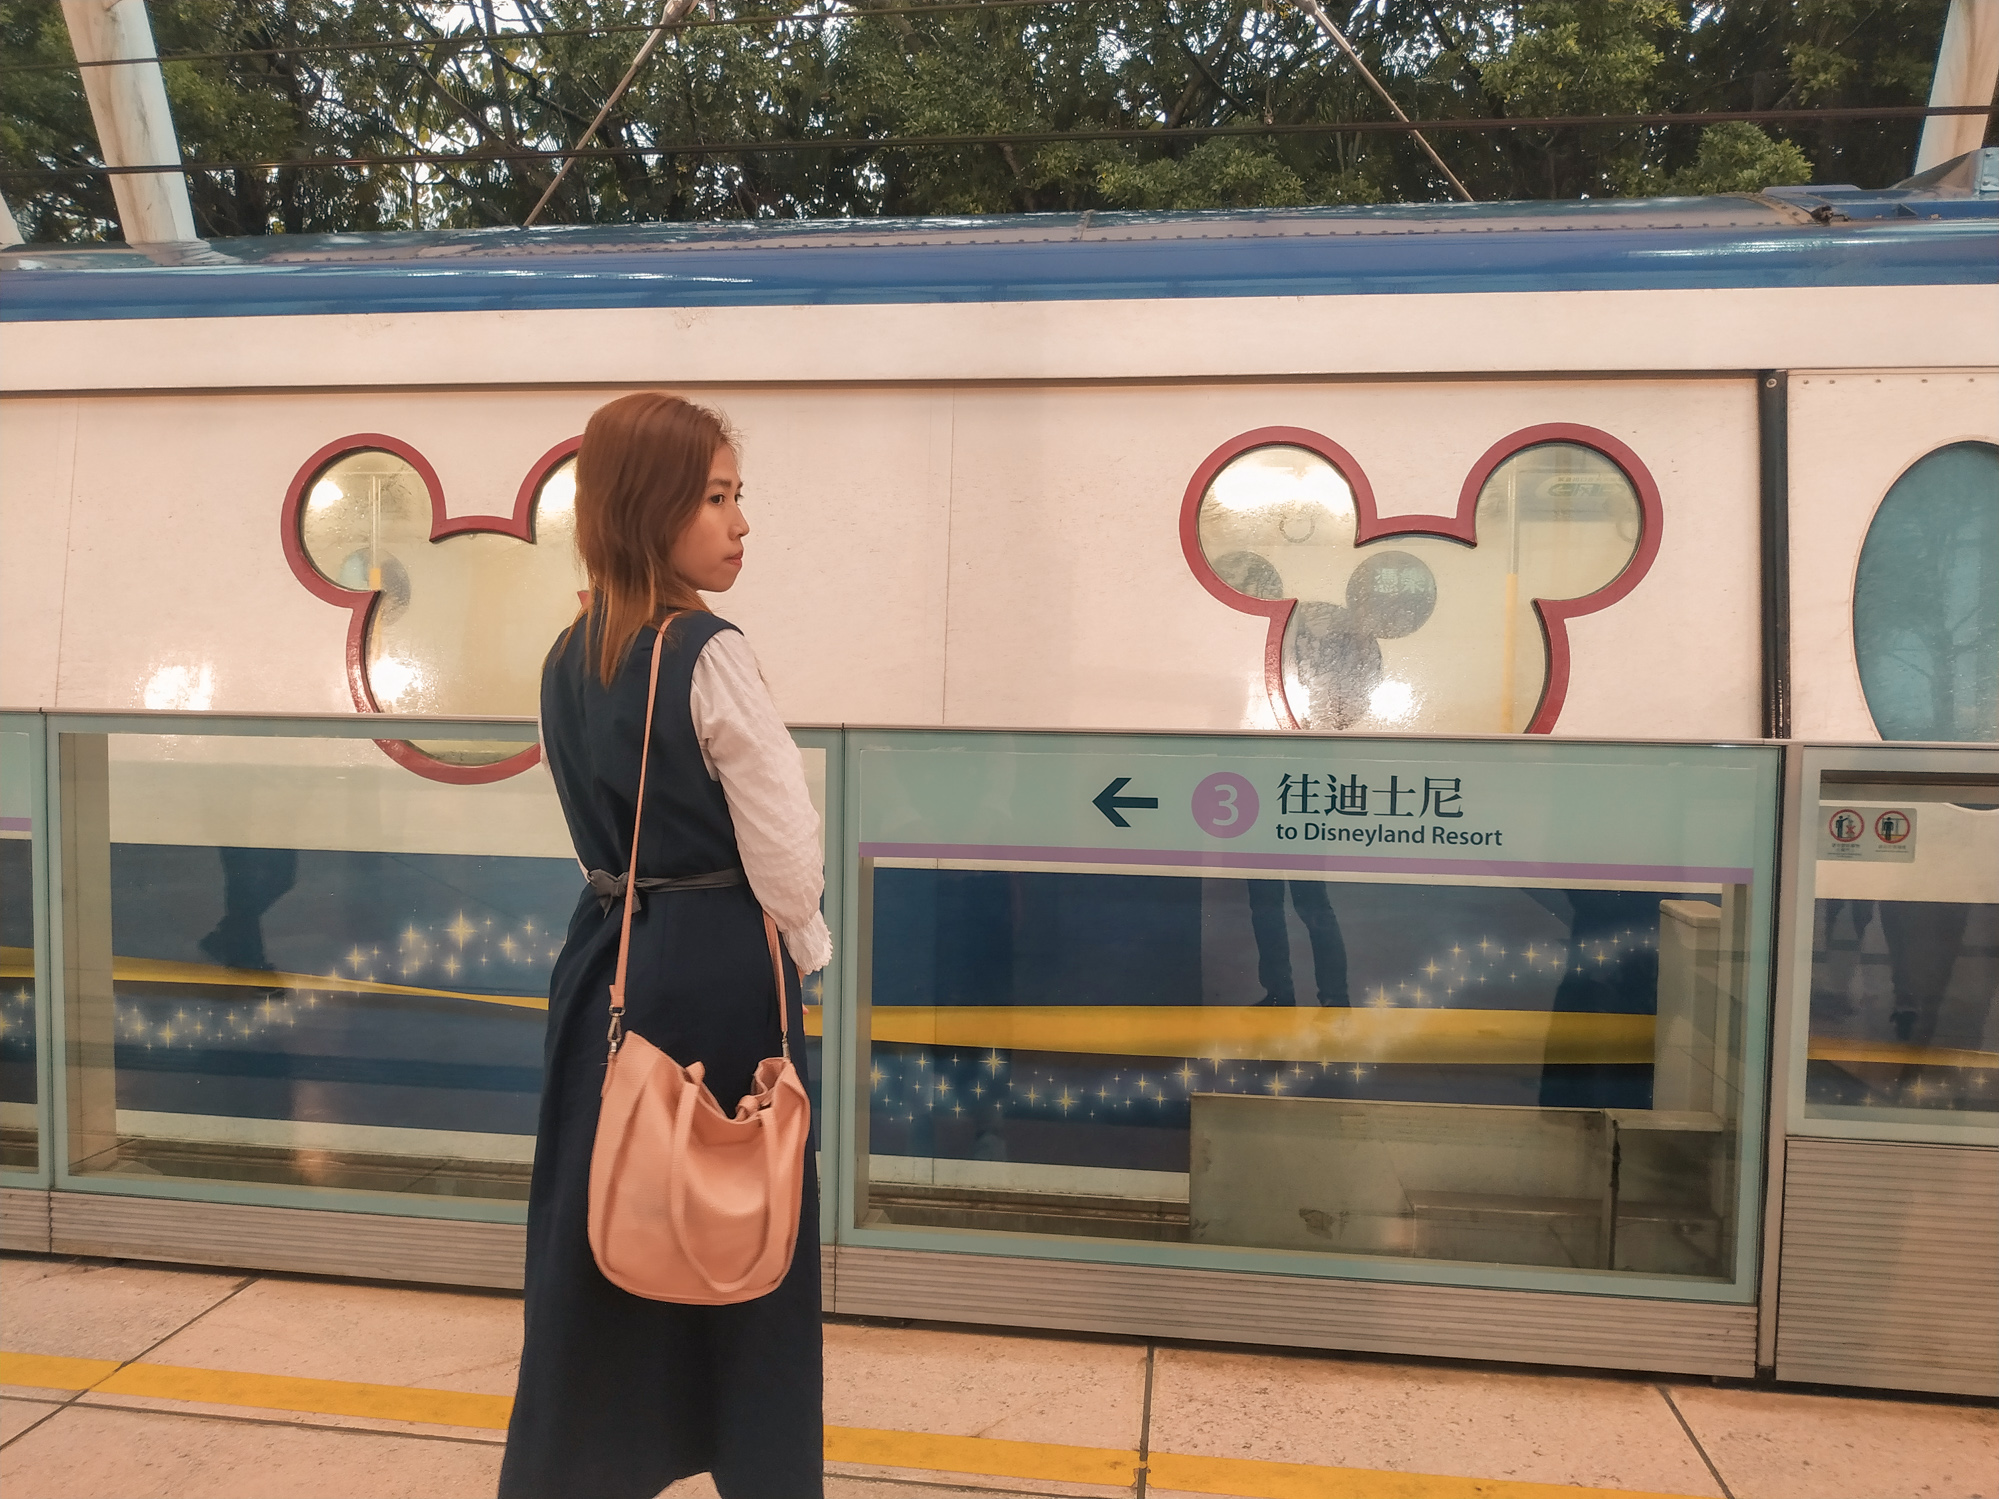 hong-kong-disneyland-getting-there-getting-tickets-experience